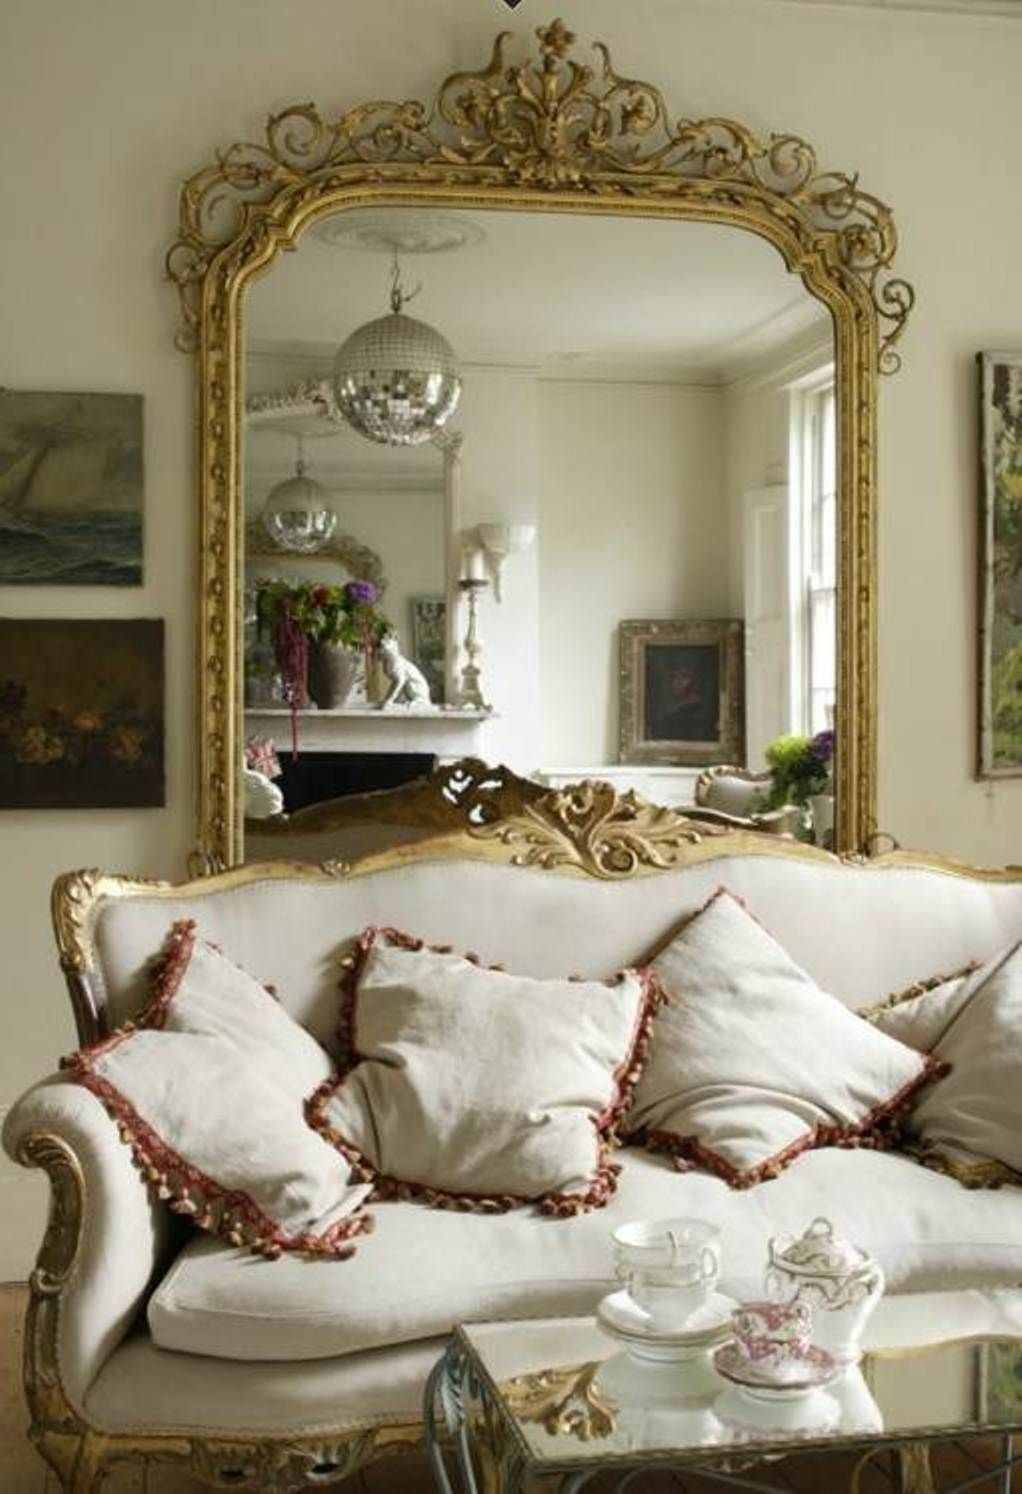 designer mirrors for living rooms. Decorative Wall Mirrors For Living Room Walls Amazing Designer  Rooms Design Contemporary